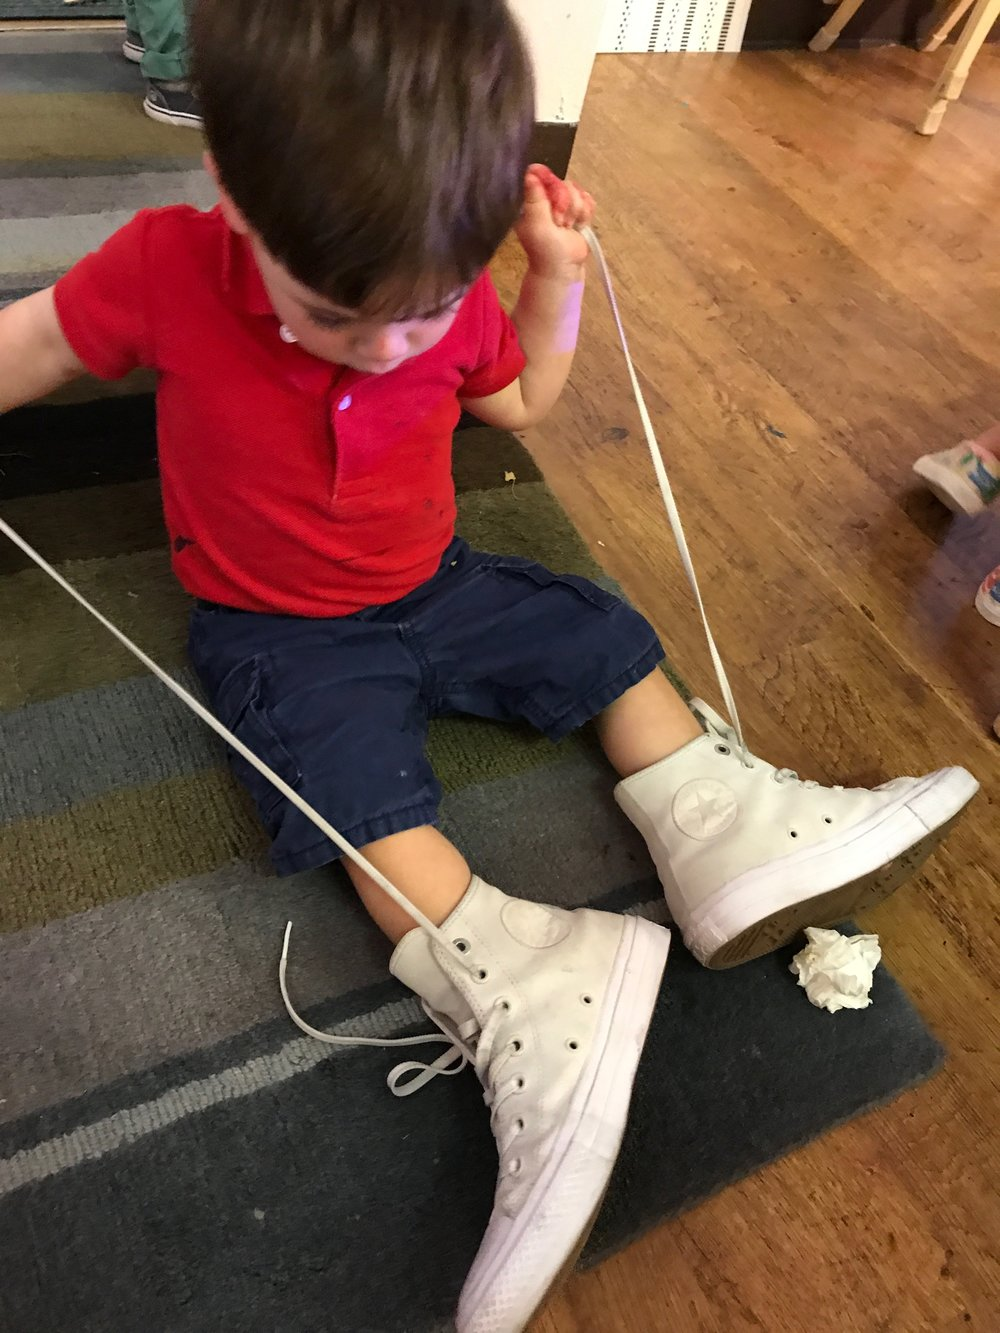 Dylan sat down and found these adult sneakers to try out. Part of our identity is our curiosity and our preferences.